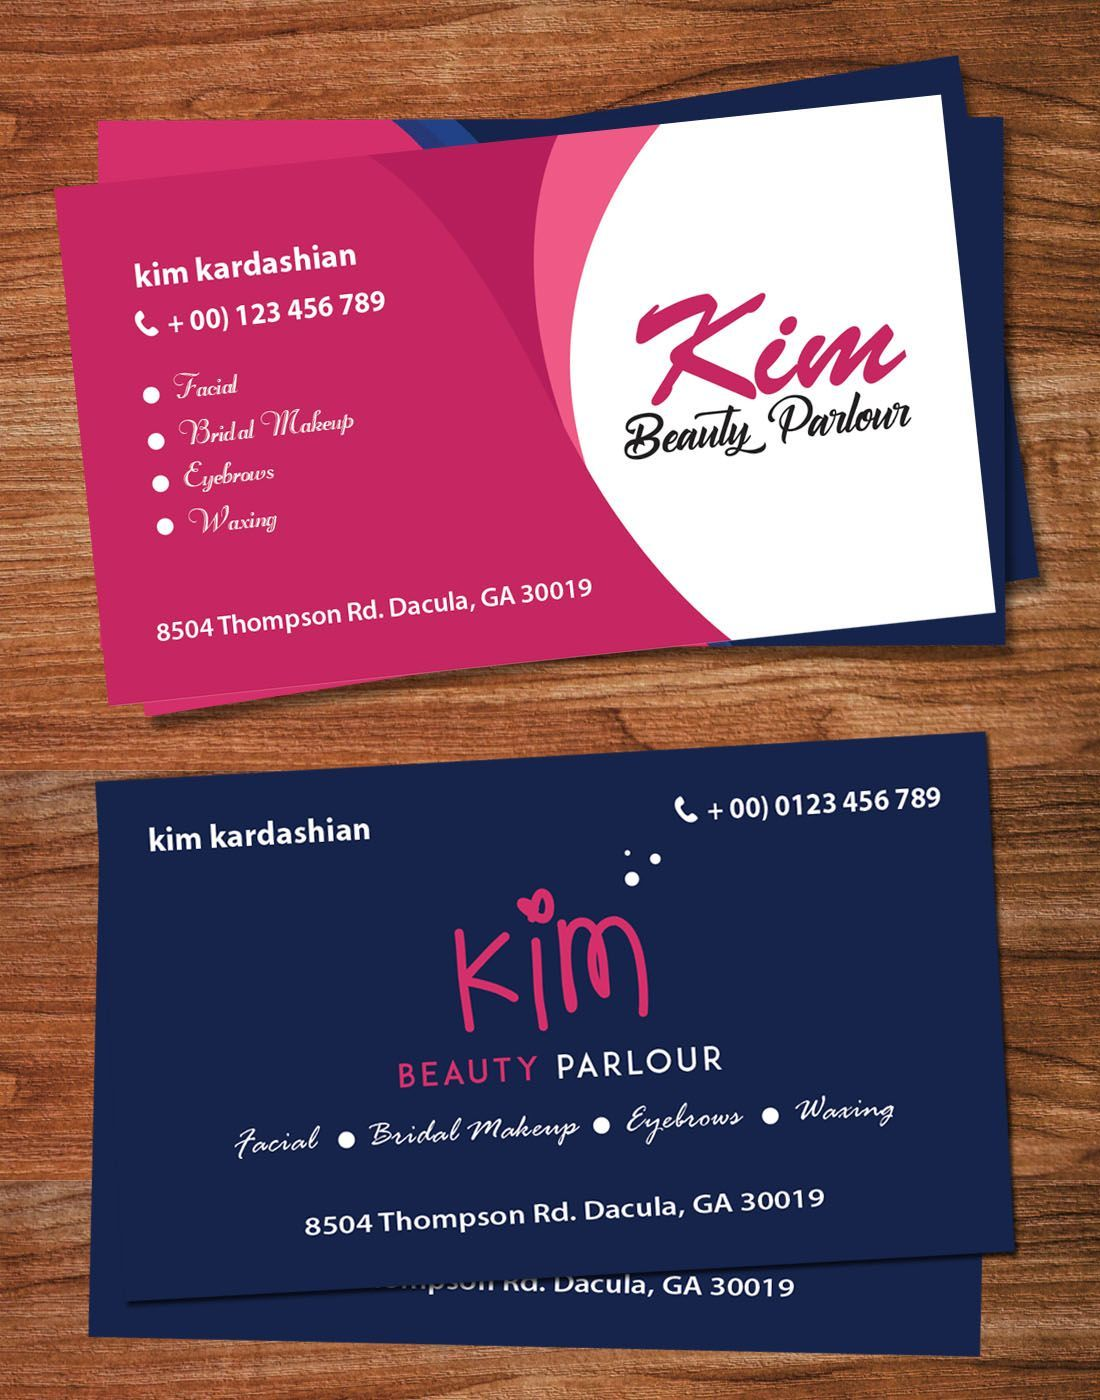 Beauty Parlour Visiting Card Template Business Card Pertaining To Hair Salon Business Card T Salon Business Cards Hair Salon Business Visiting Card Templates